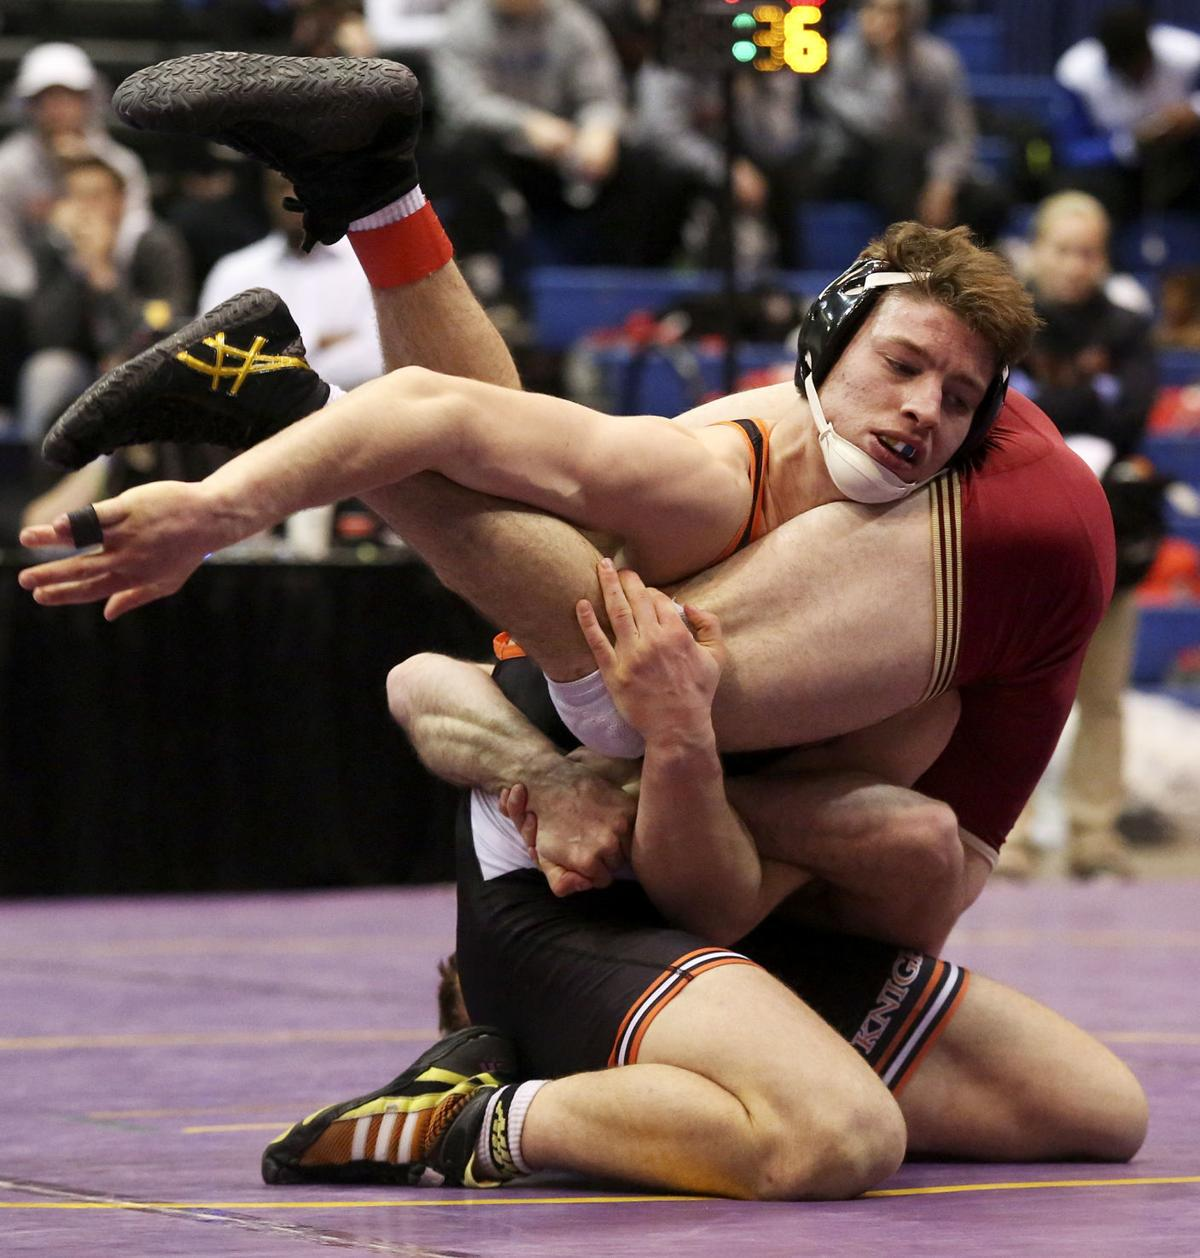 NCAA DIII Lower Midwest Regional Wrestling tournament